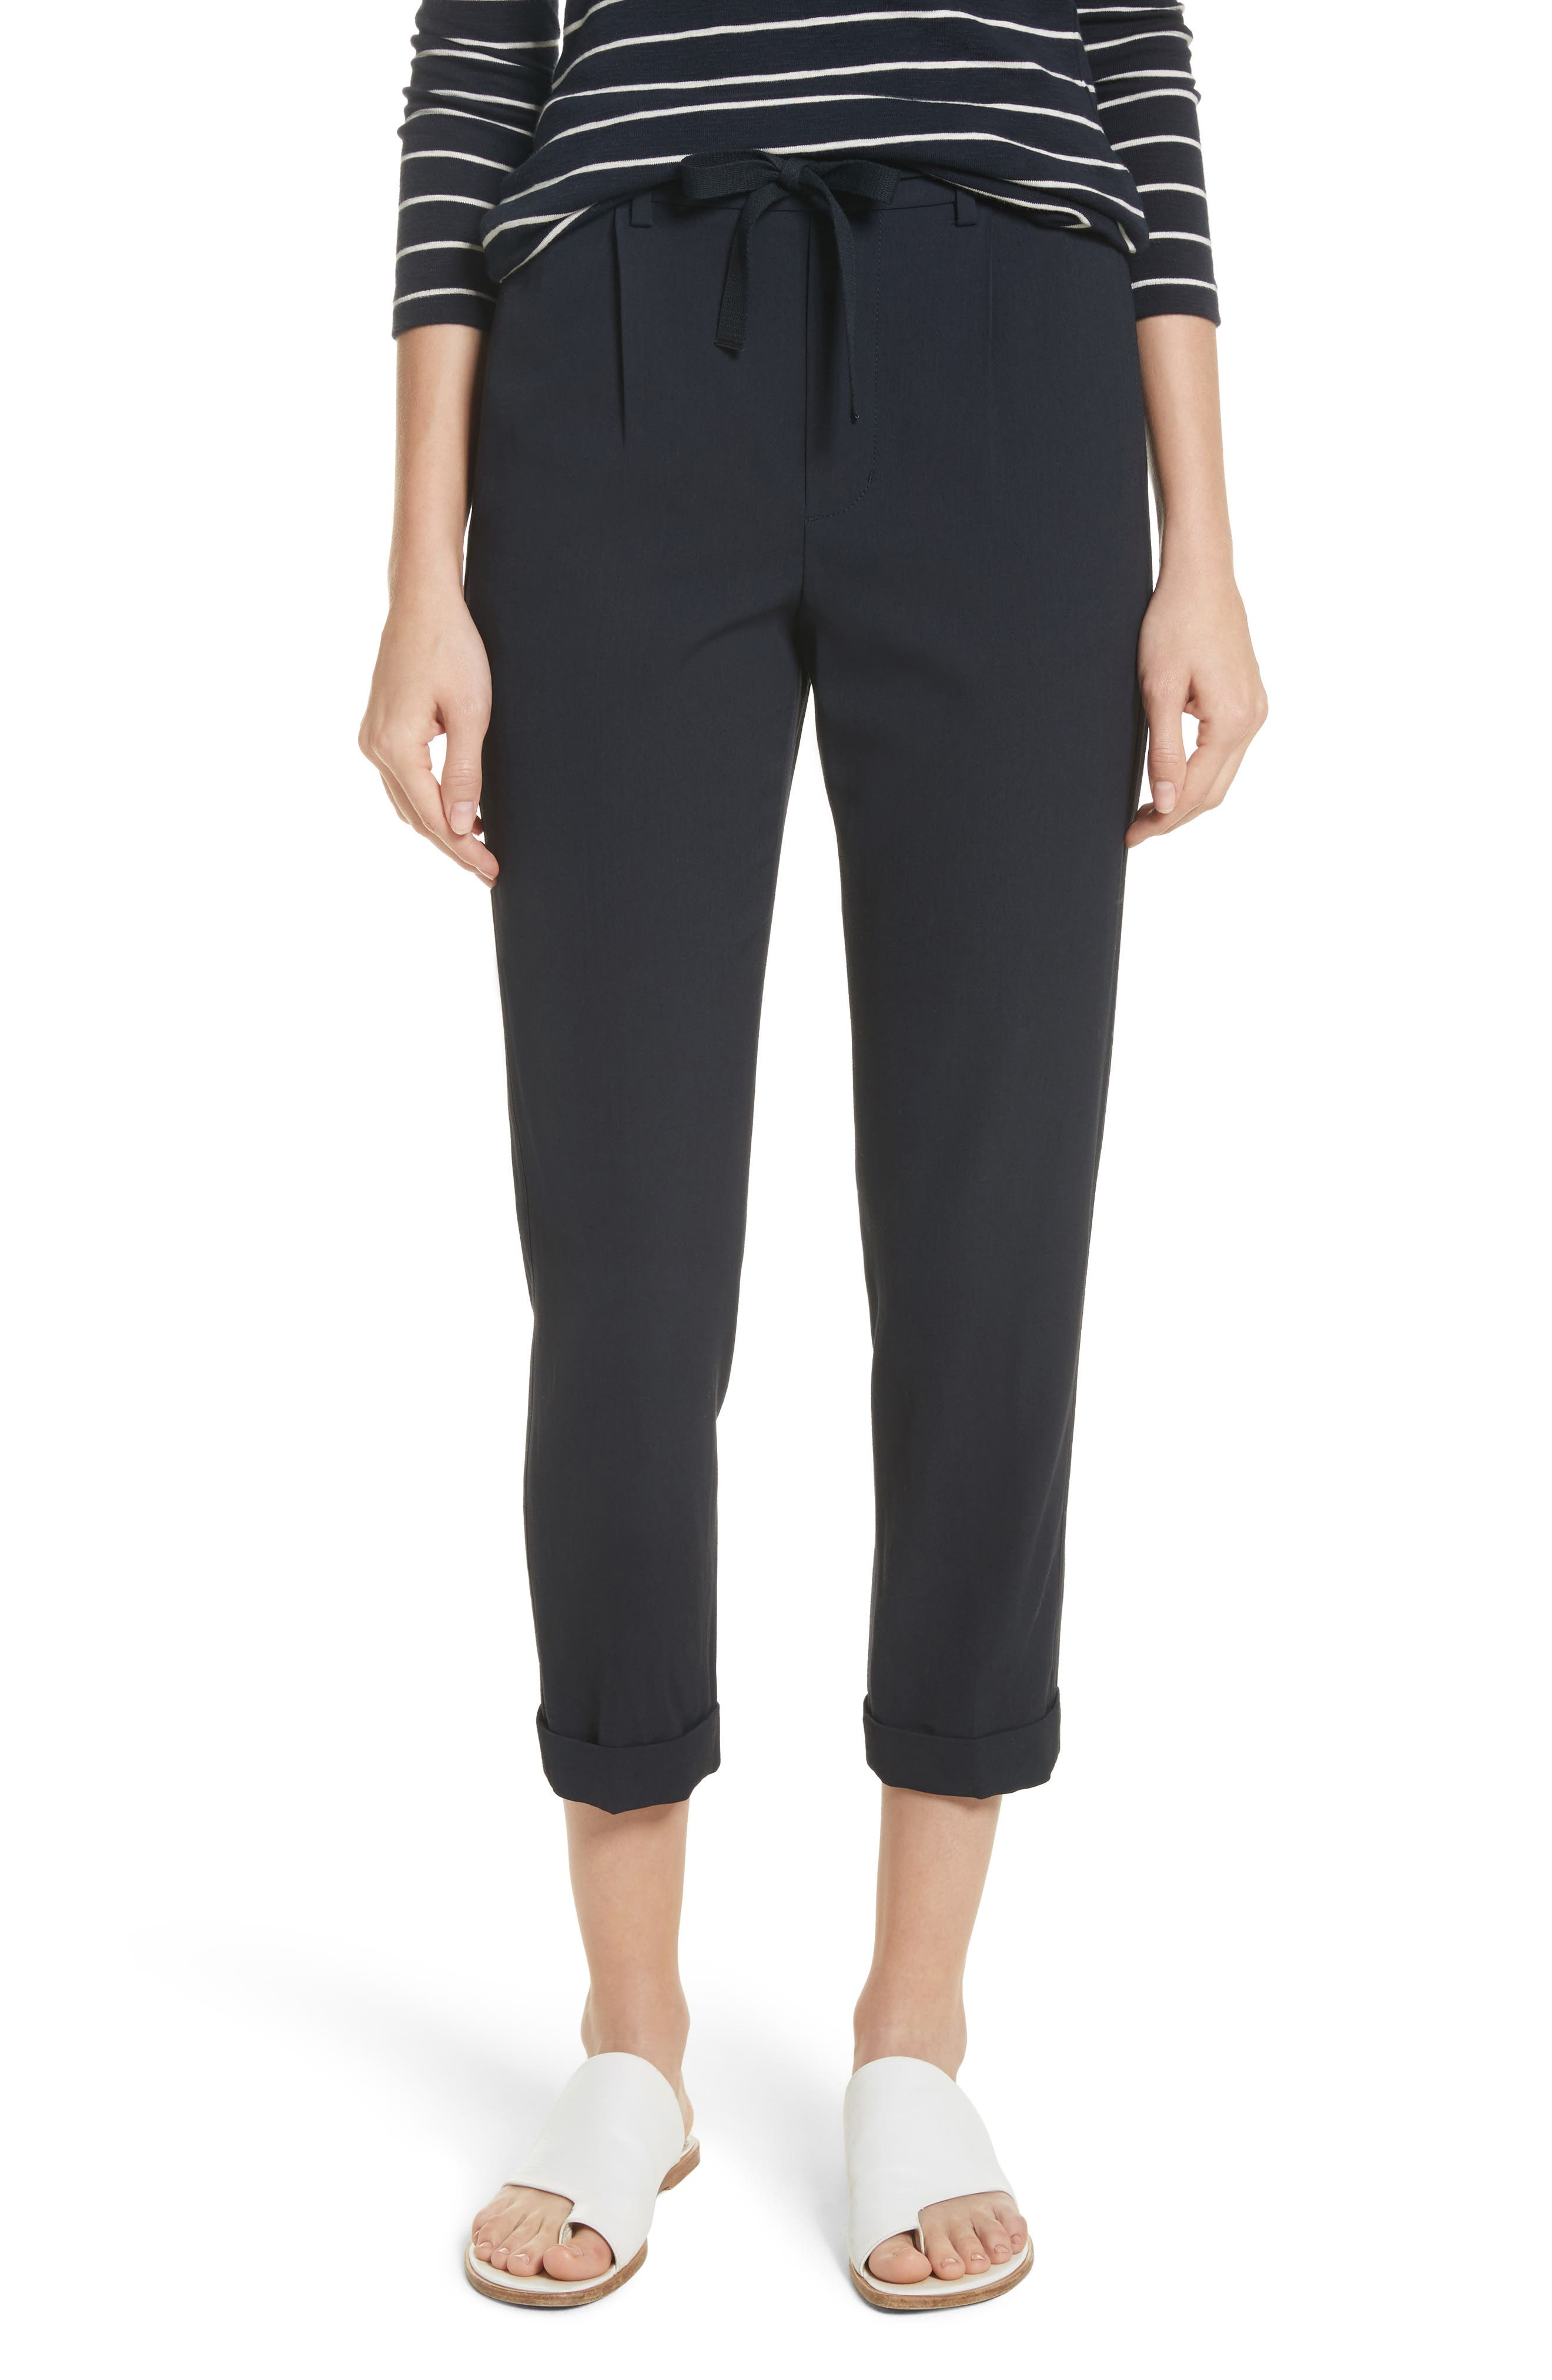 Main Image - Vince Side Strap Jogger Pants